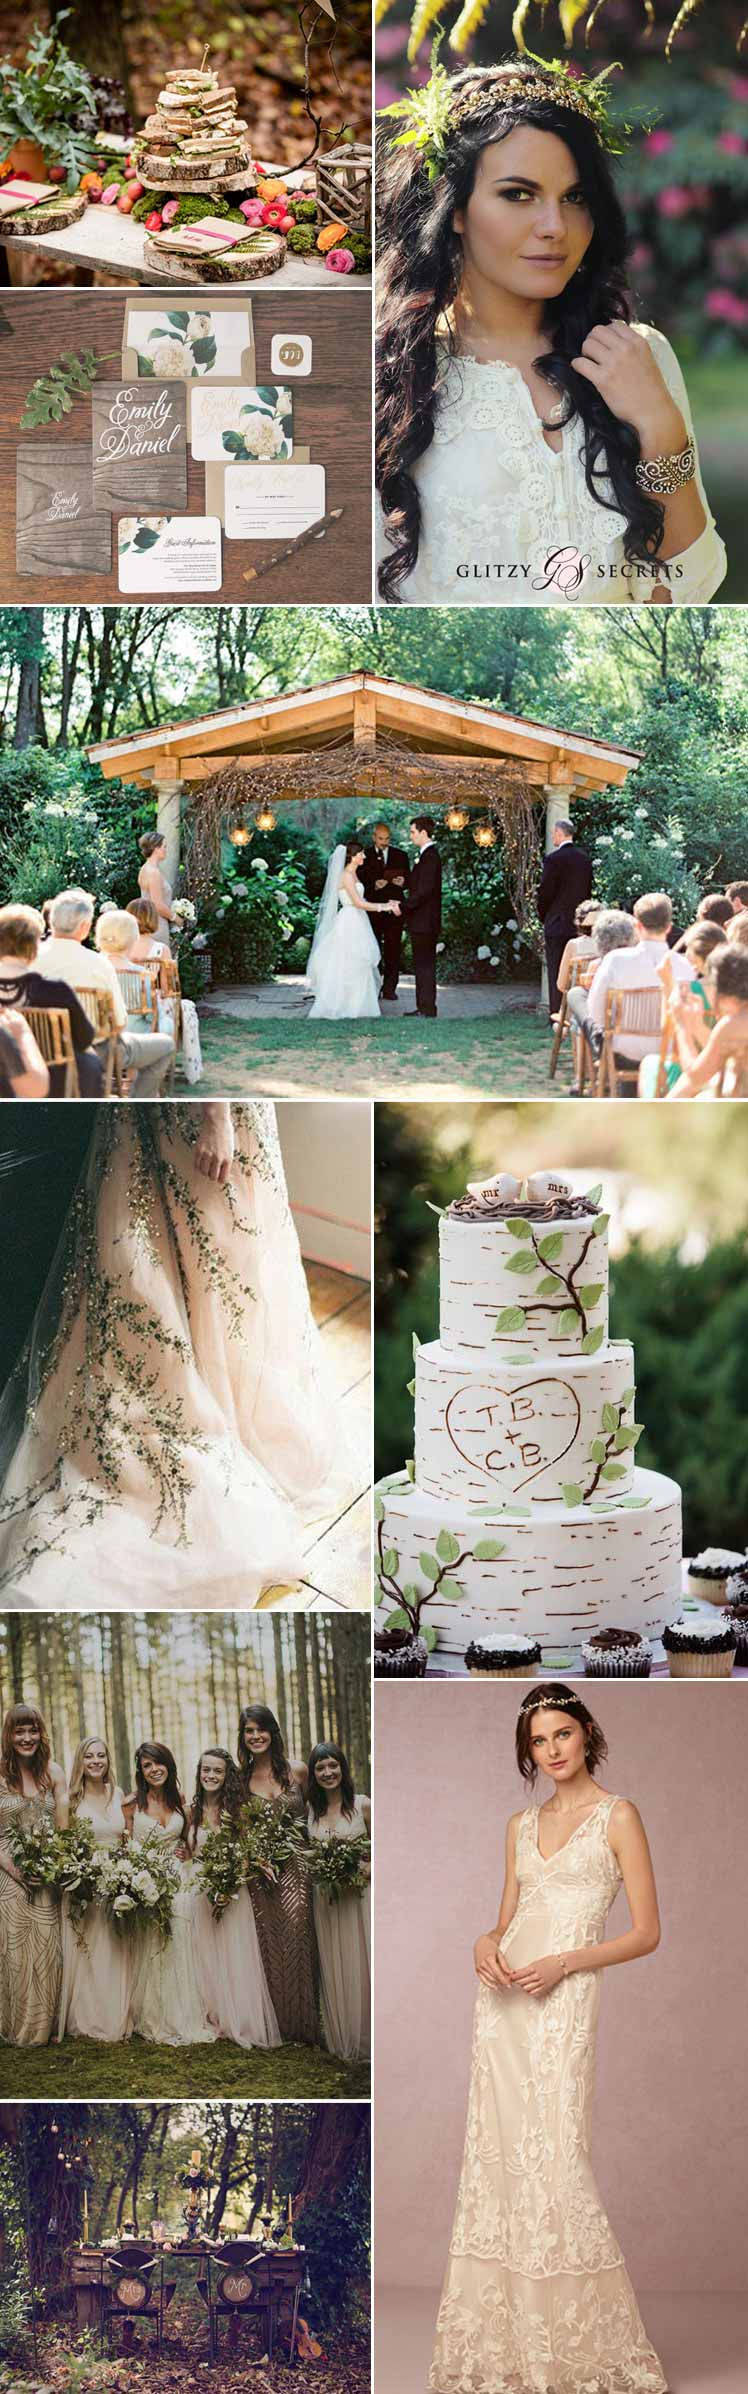 flowers and fairies - enchanting woodland wedding ideas